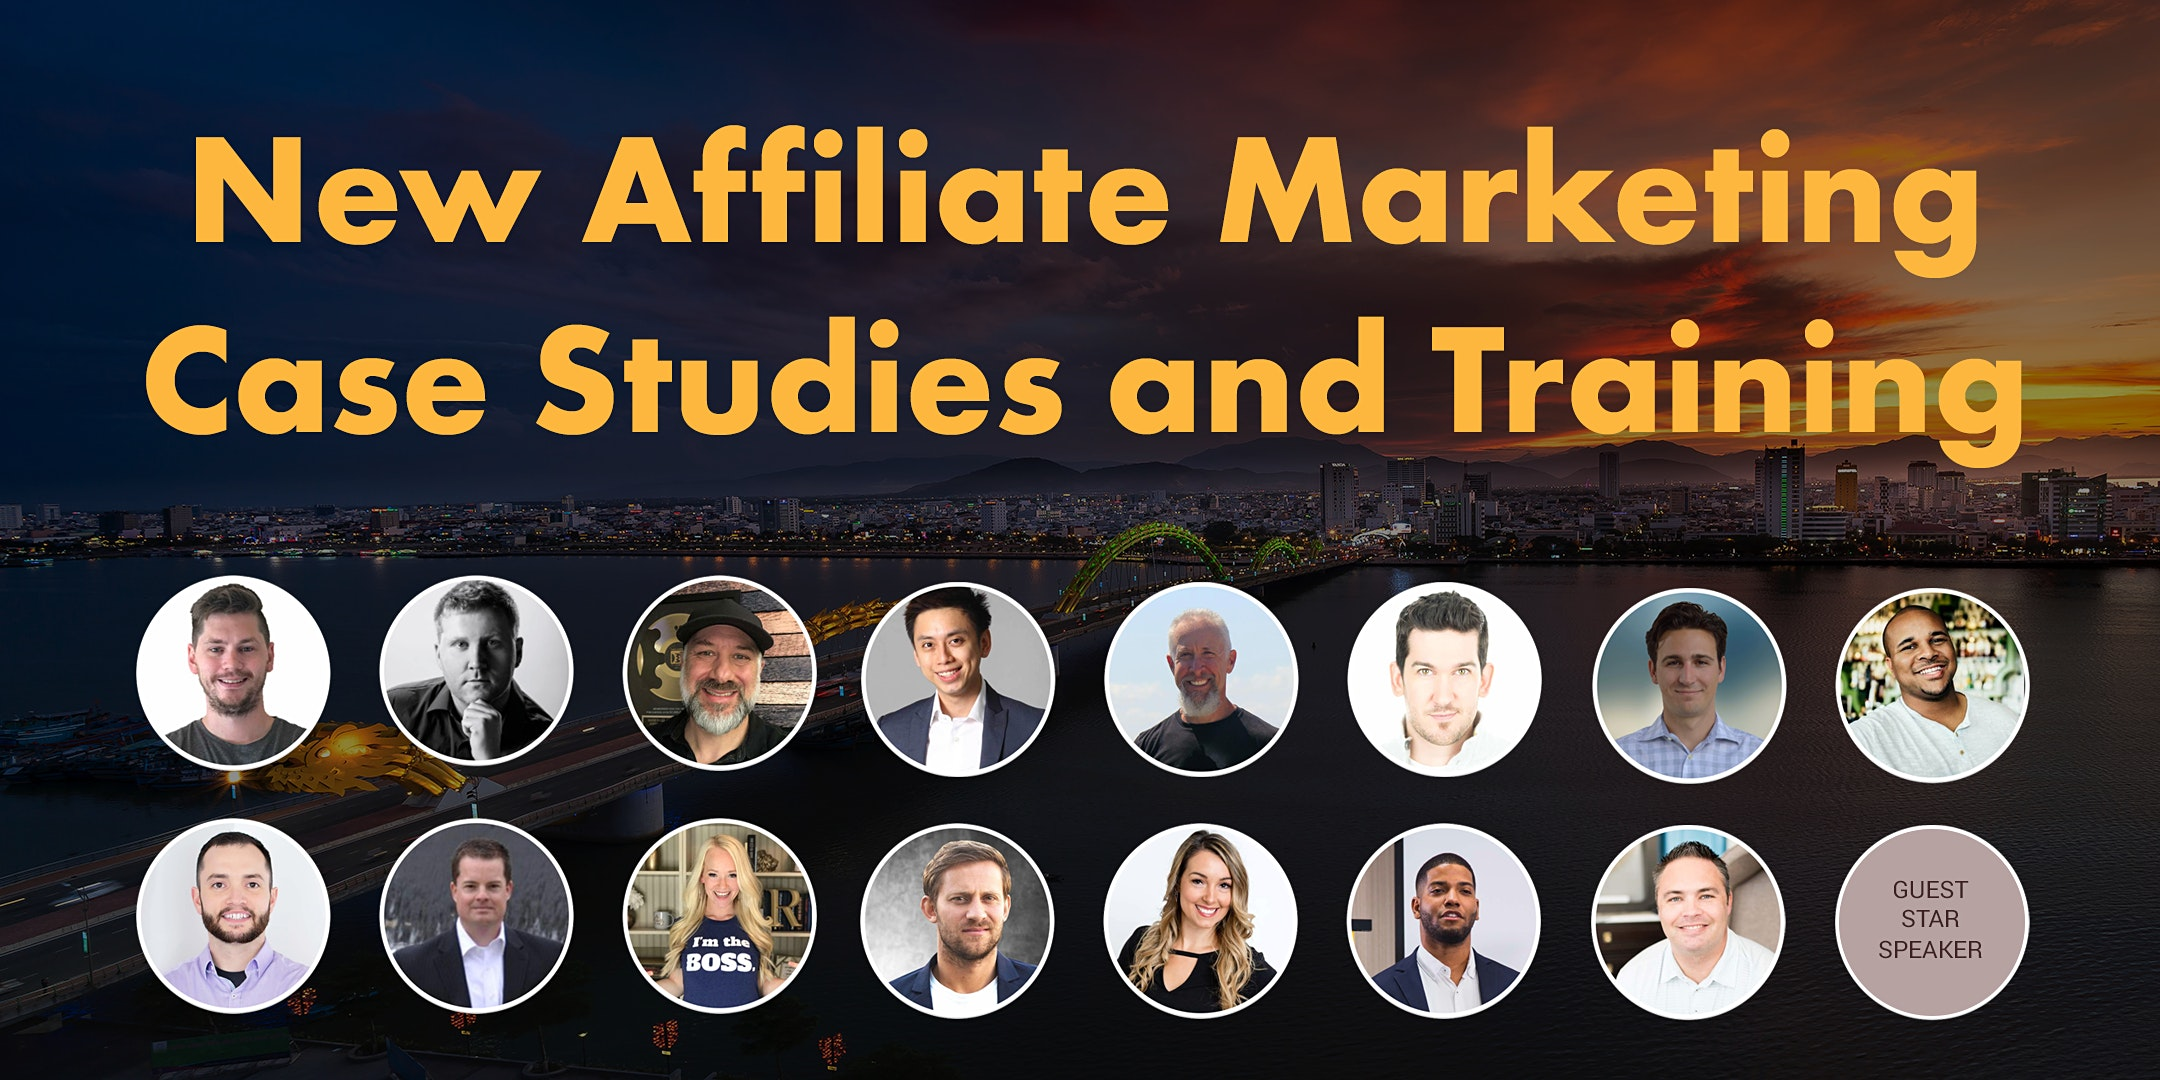 New Affiliate Marketing Case Studies and Training